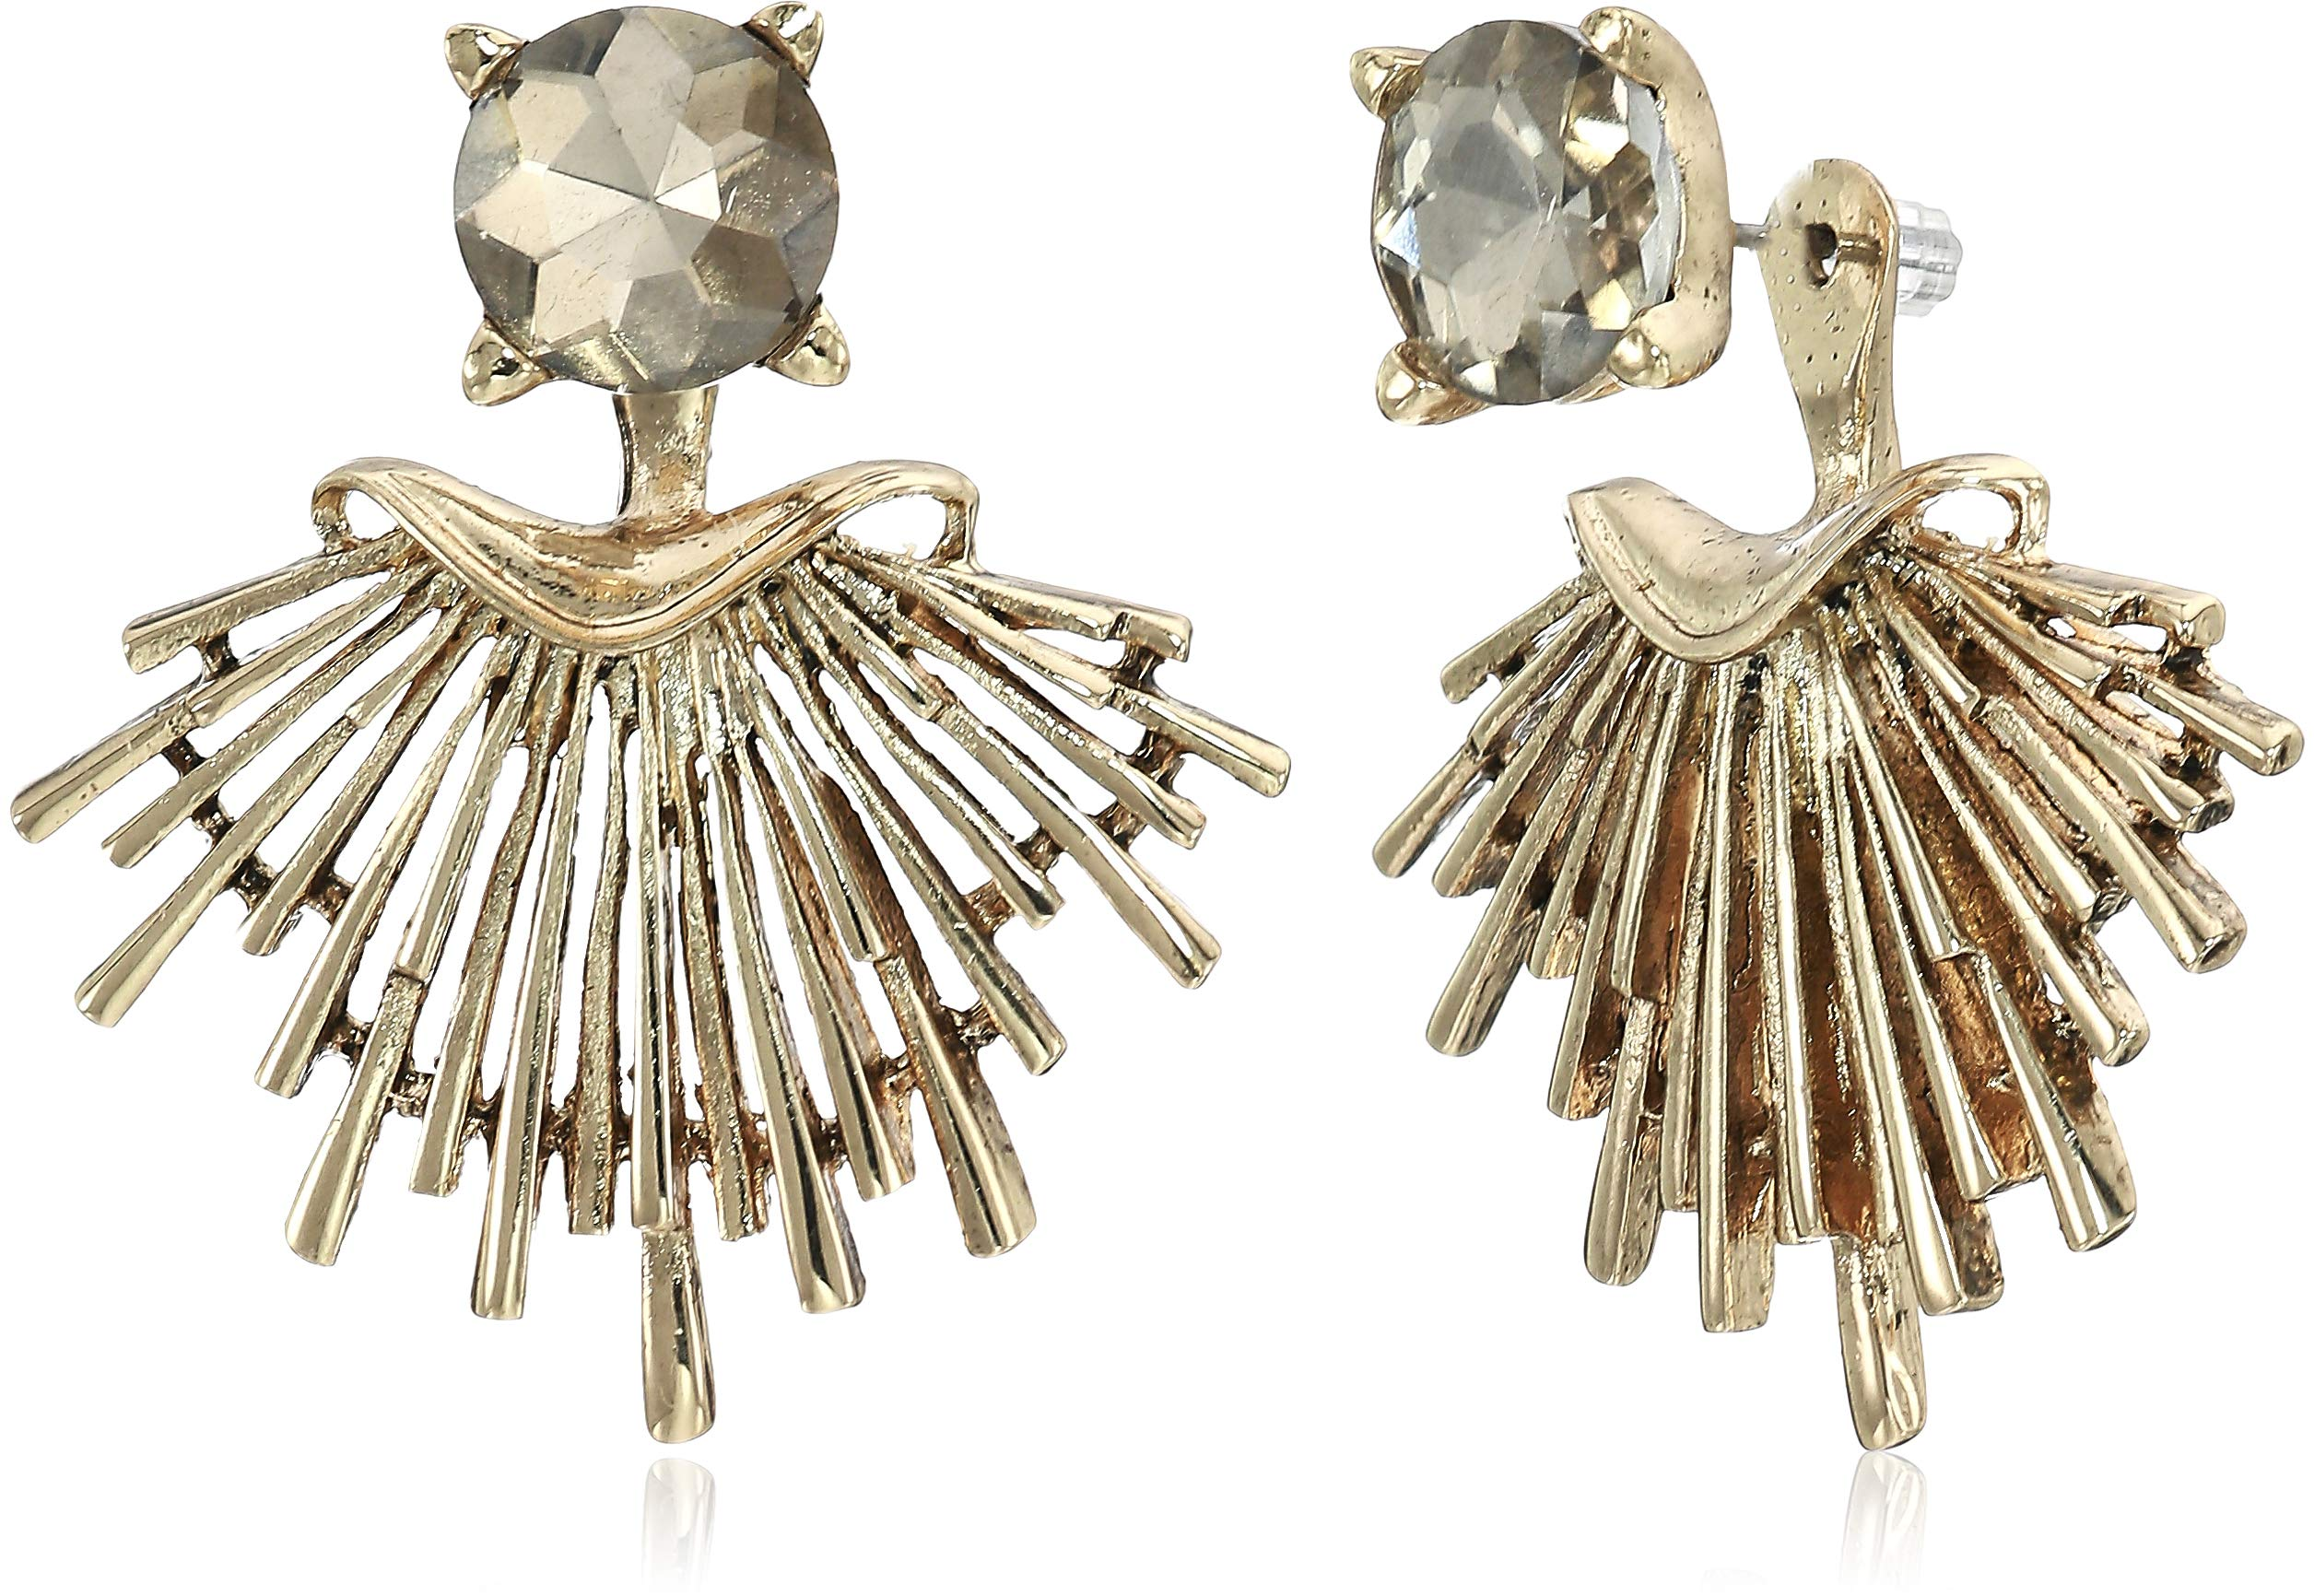 Badgley Mischka Champagne Round and Metal Jacket Earrings, Gold